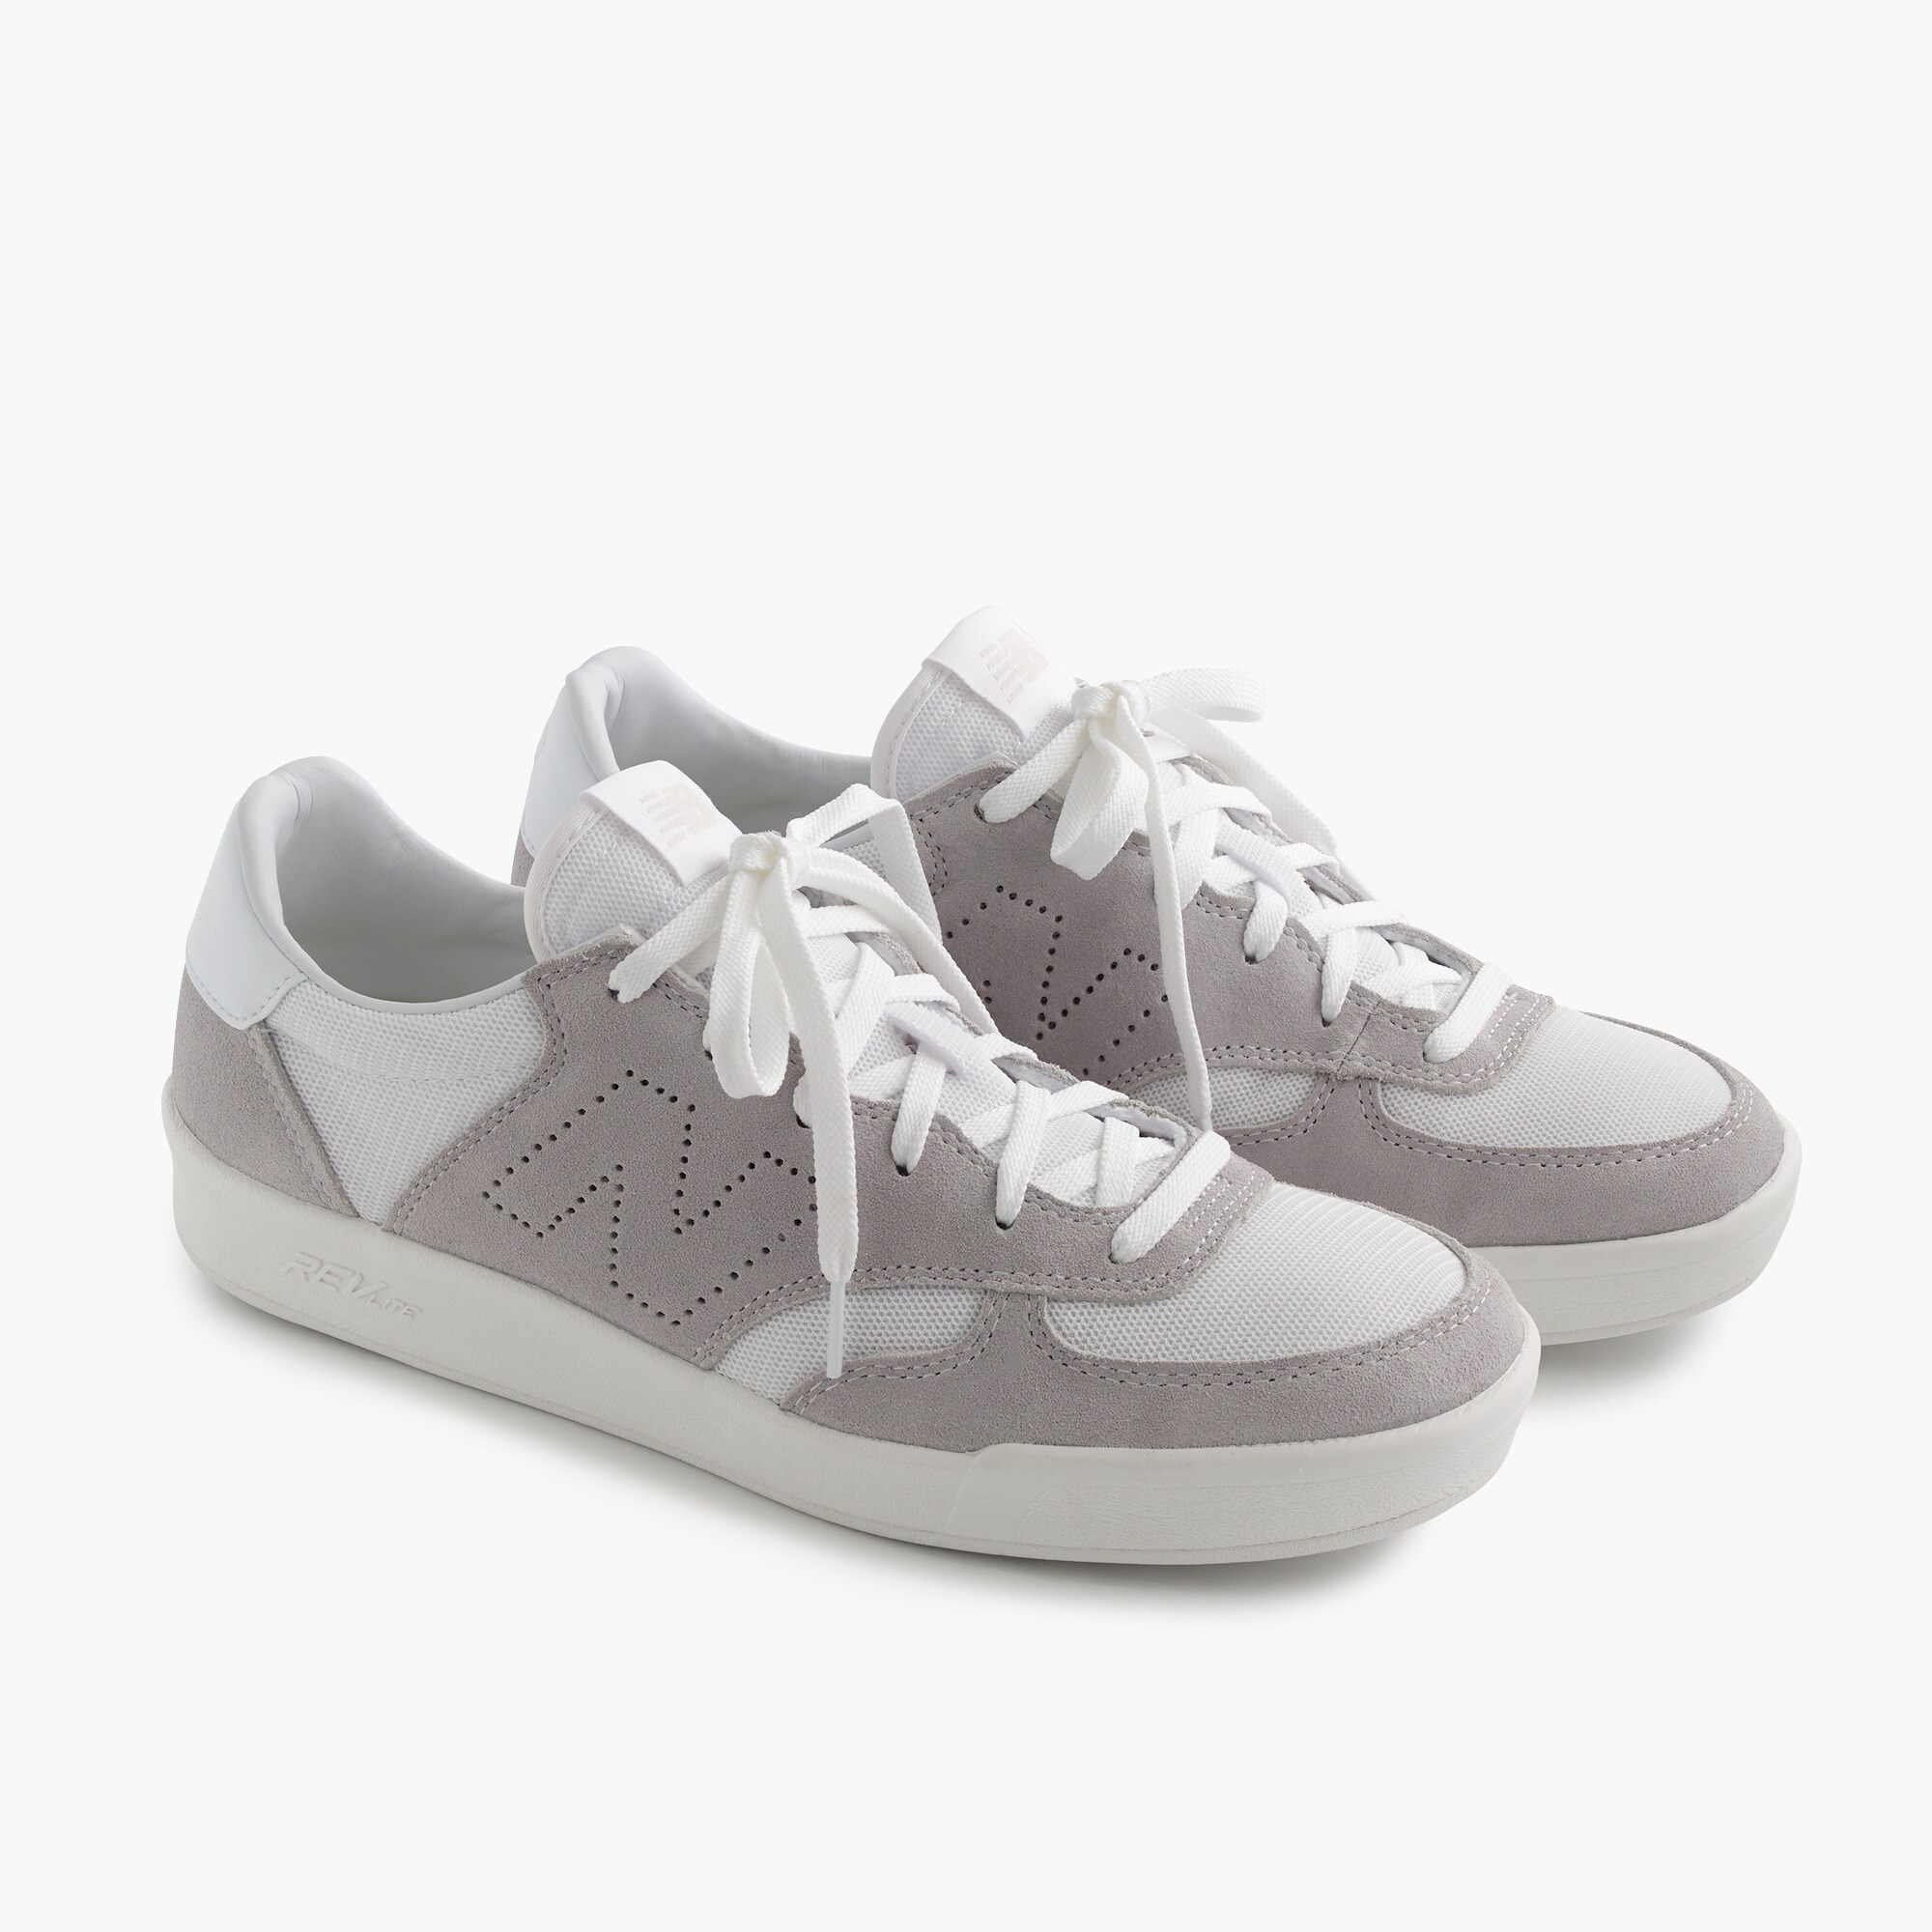 Image 4 for New Balance® CRT300 sneakers in white